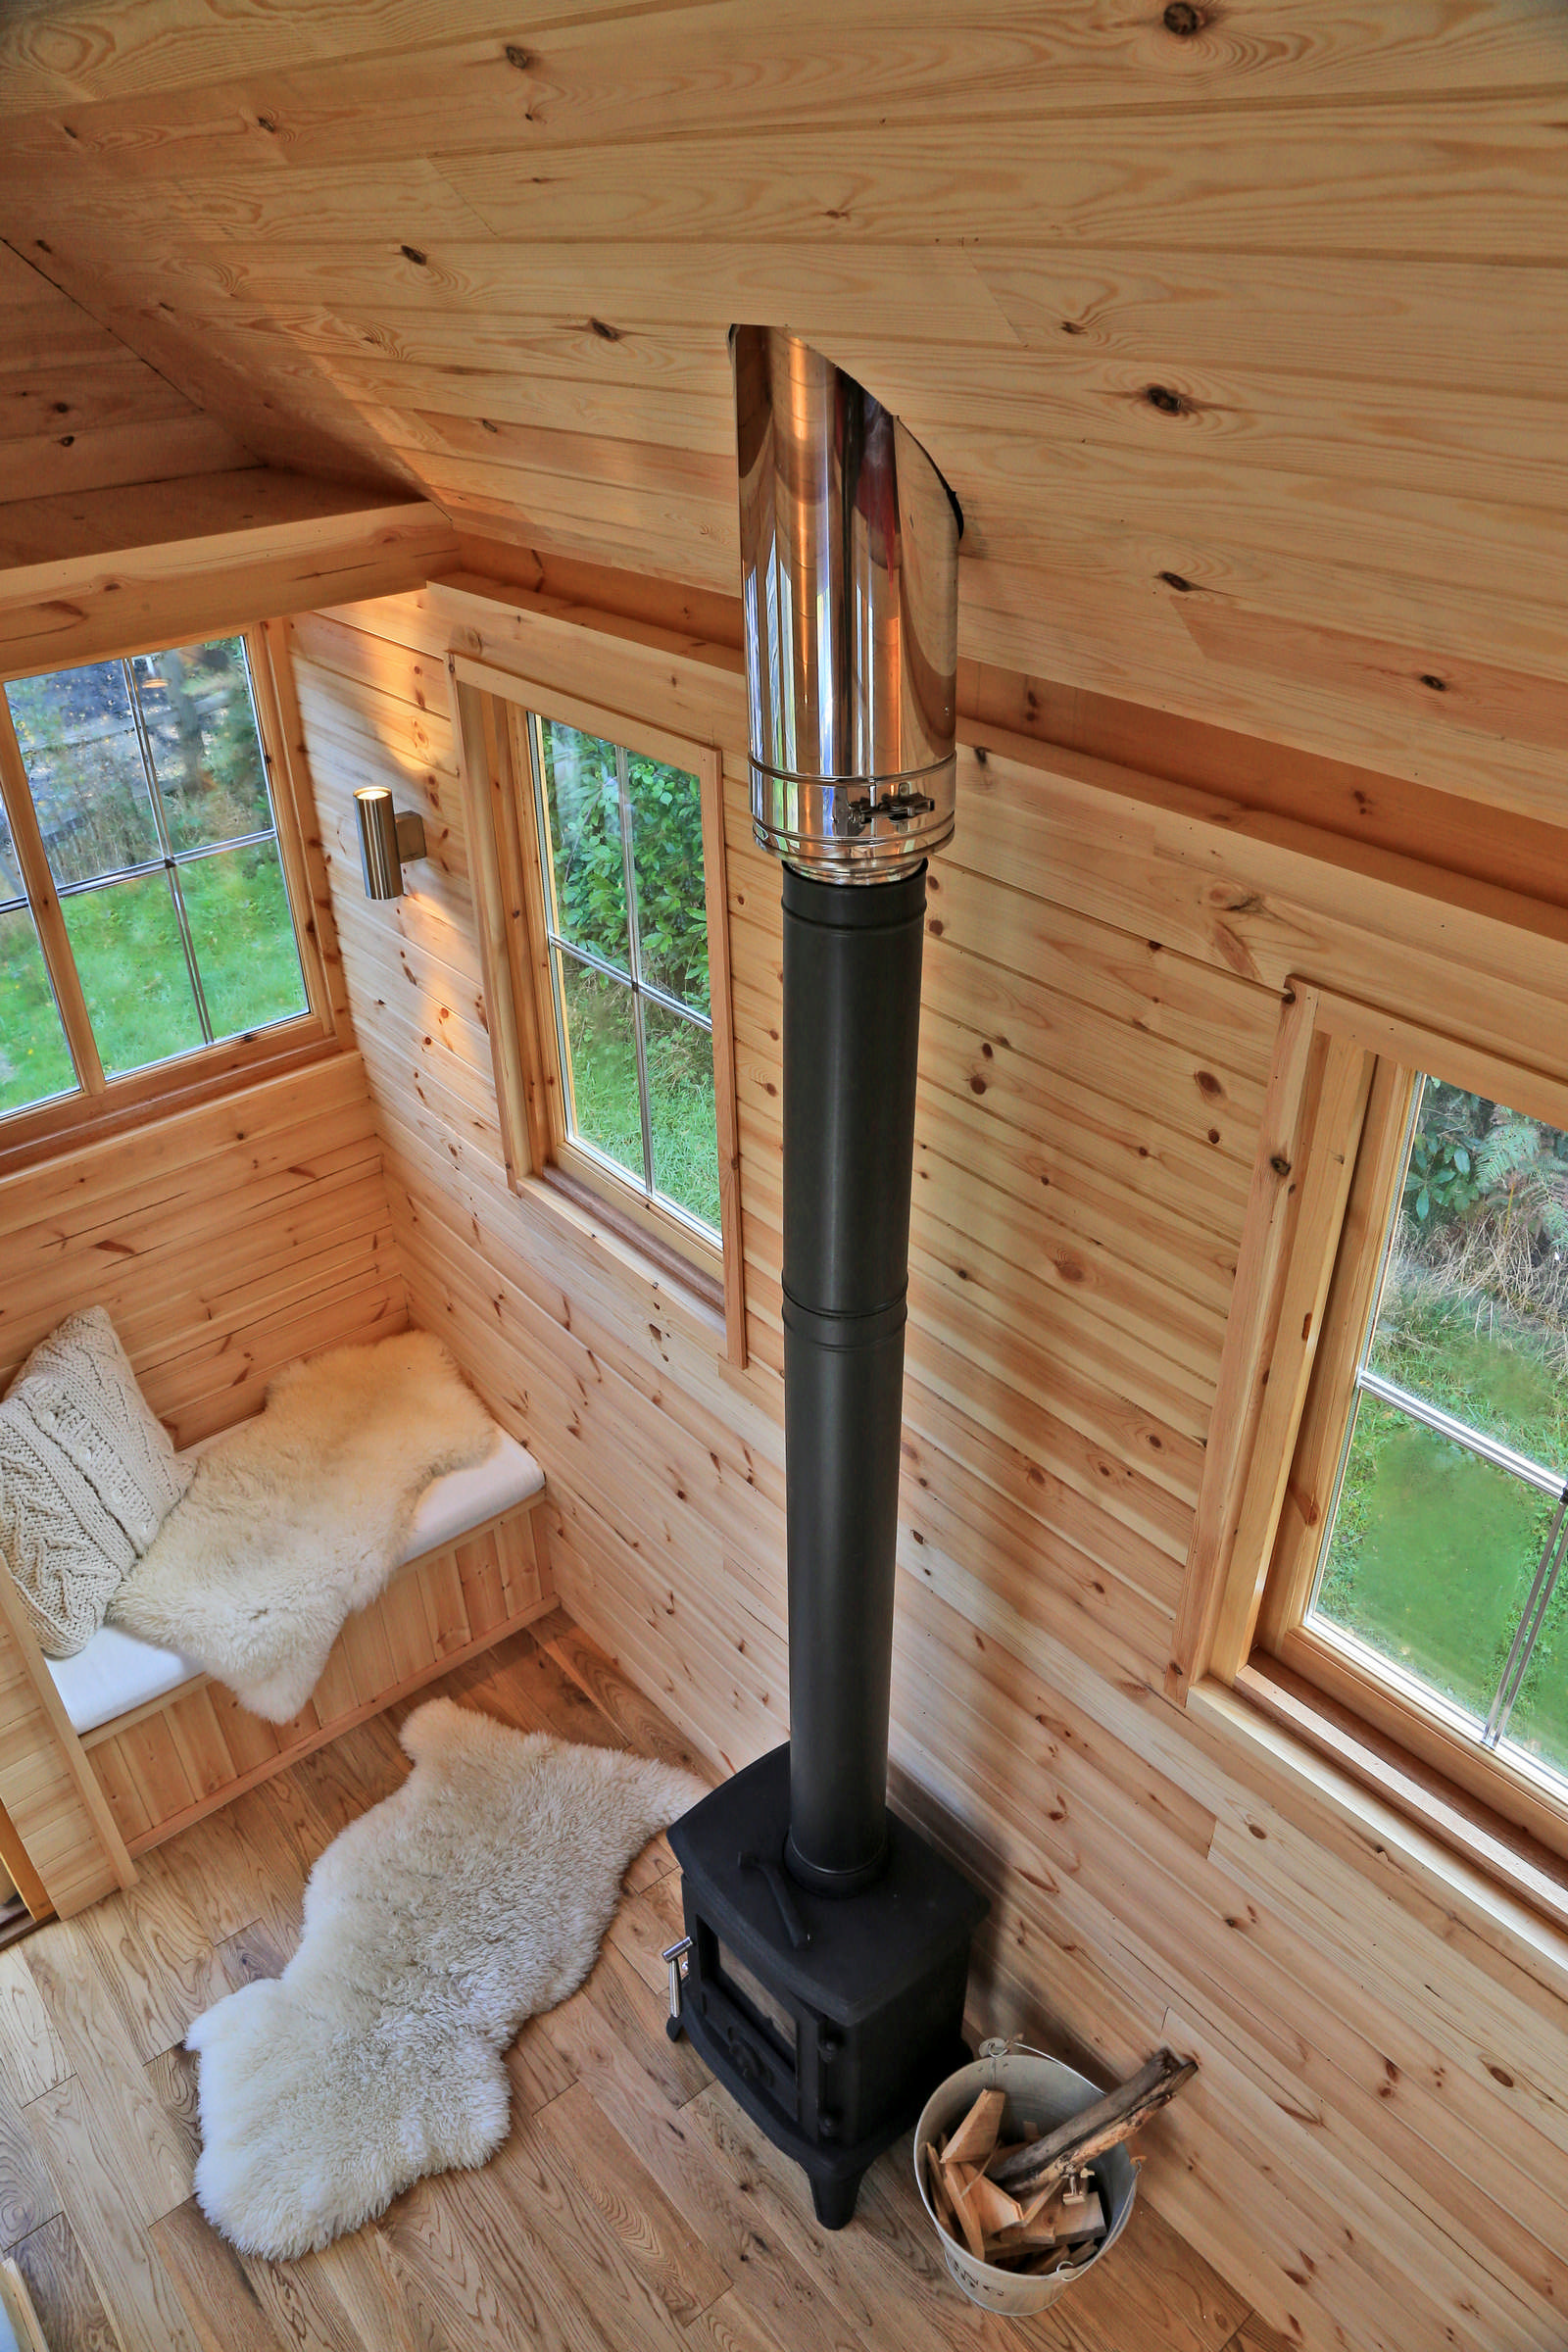 Estate Agency: Cabin stove from above